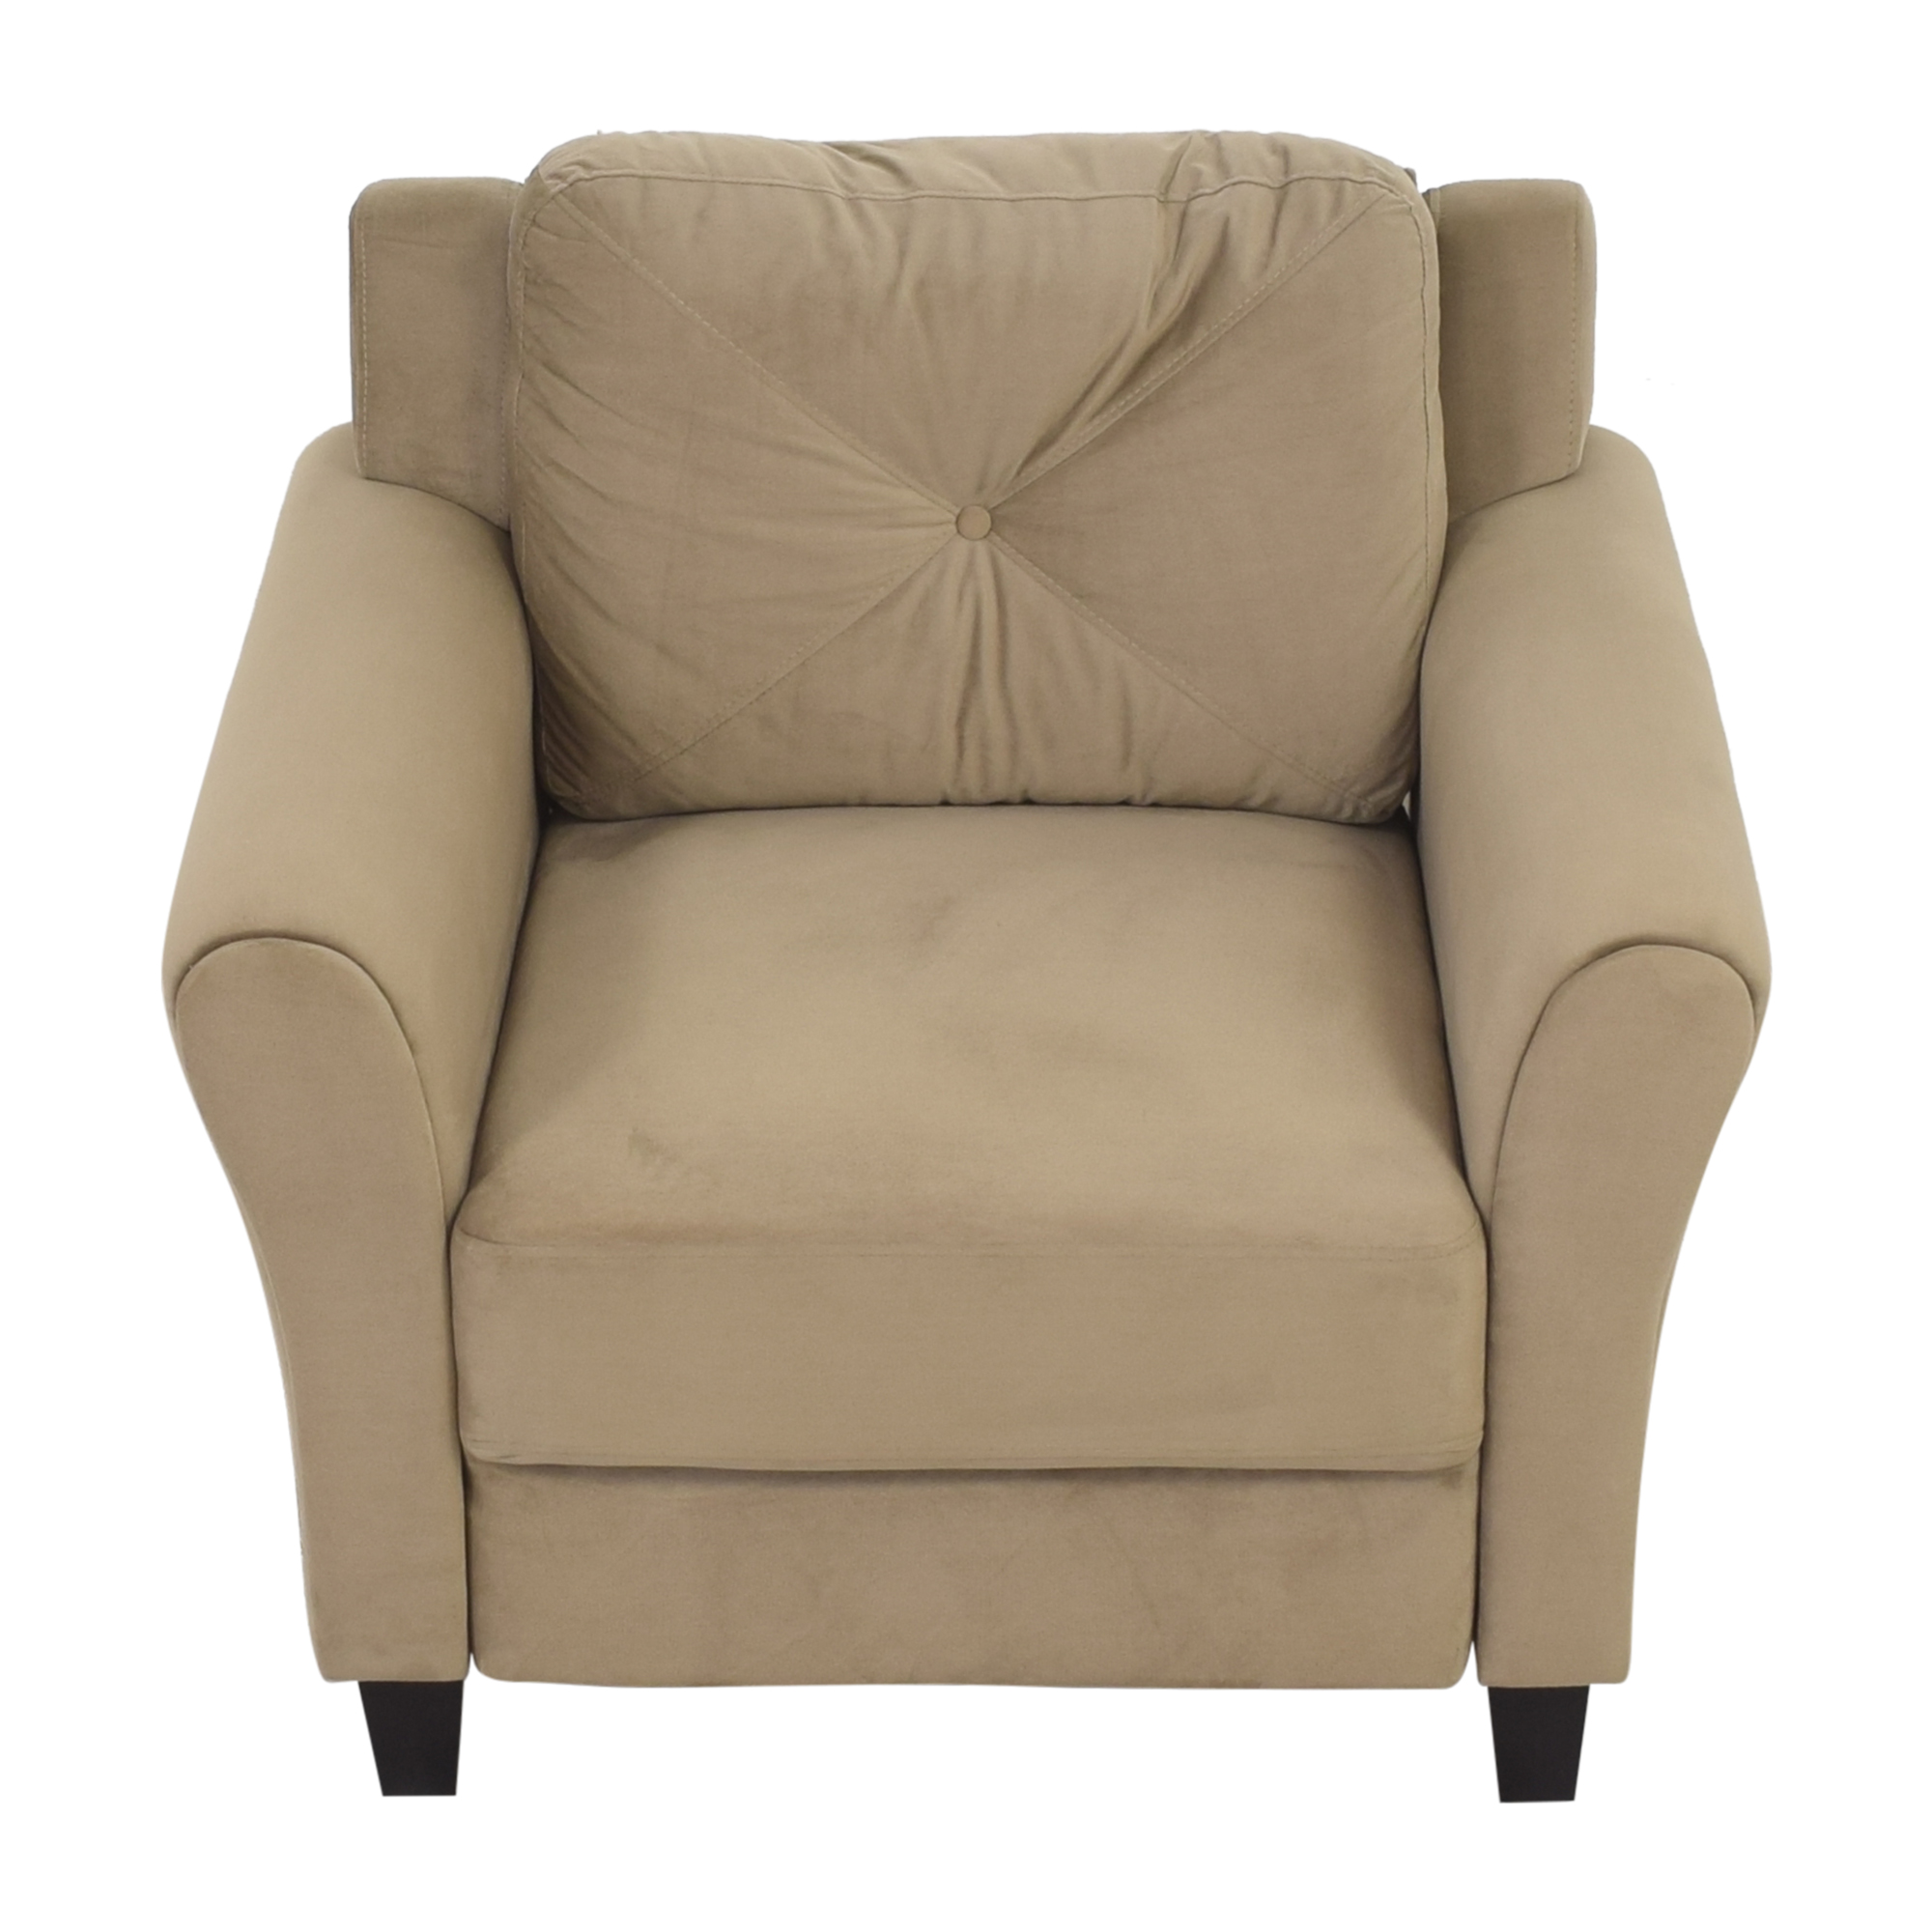 Lifestyle Solutions Lifestyle Solutions Harvard Chair price